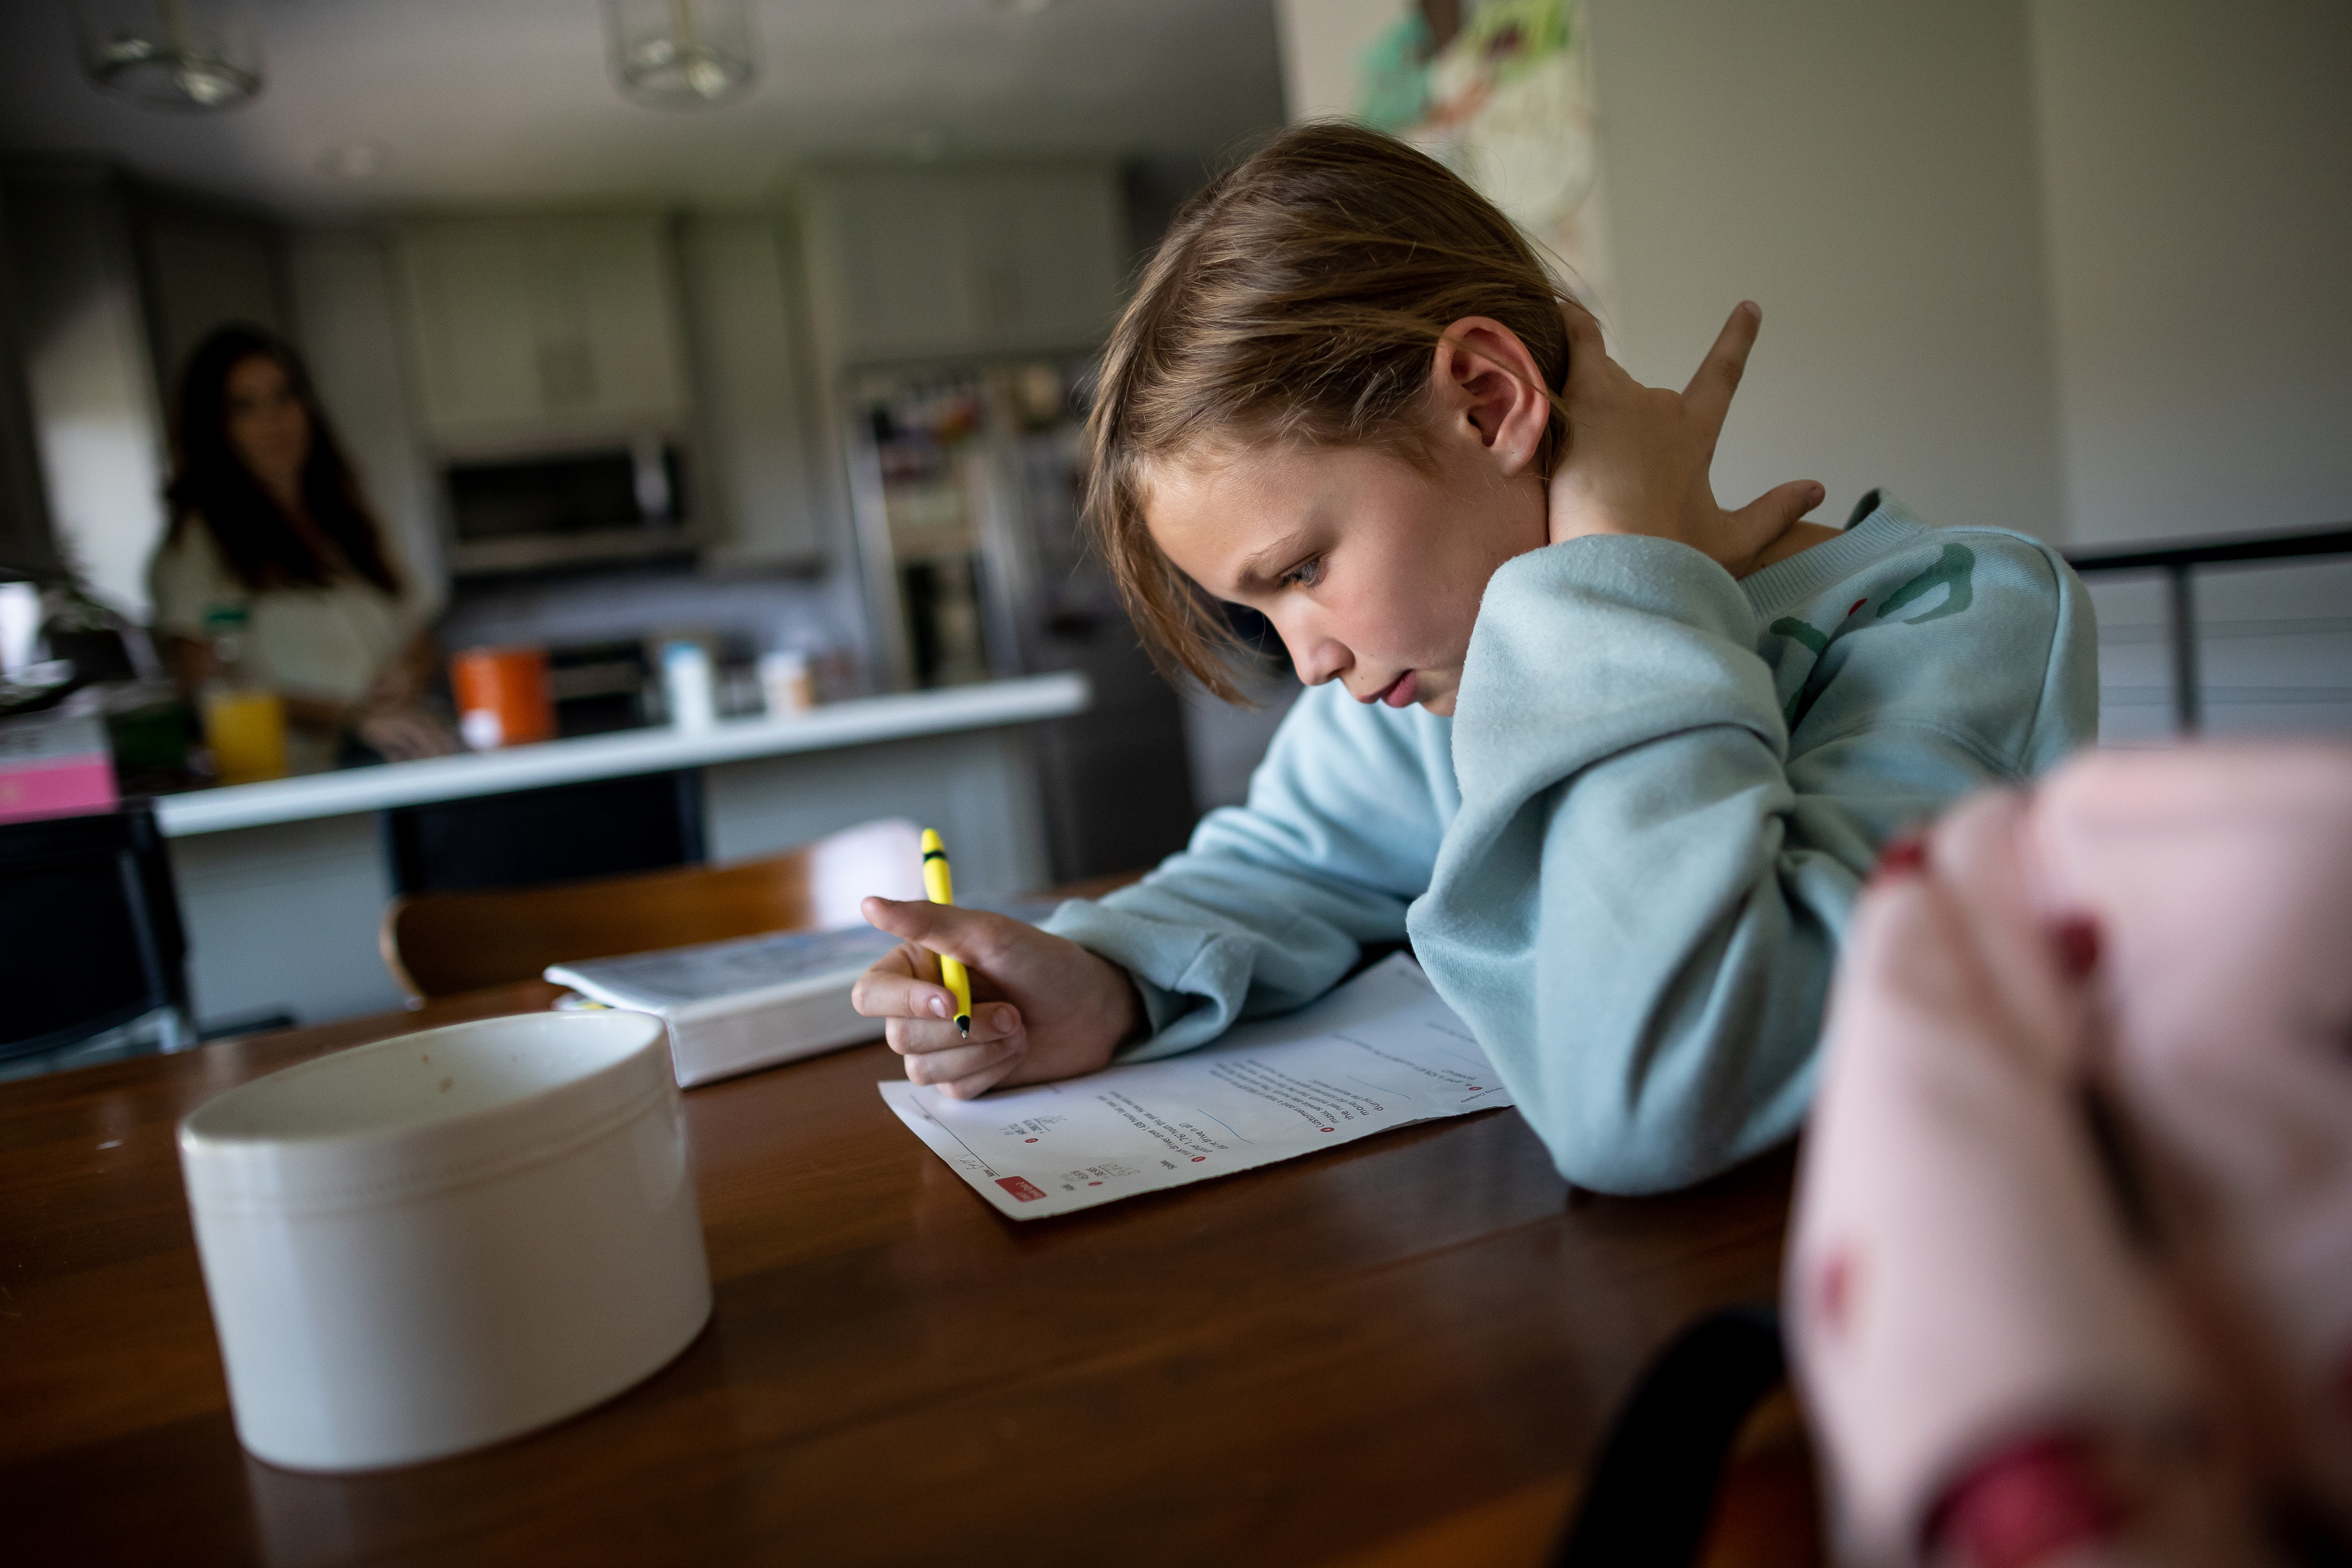 Emery Blackburn, 9, does her homework after returning from school at her home in South Jordan on Tuesday, Sept. 14, 2021.